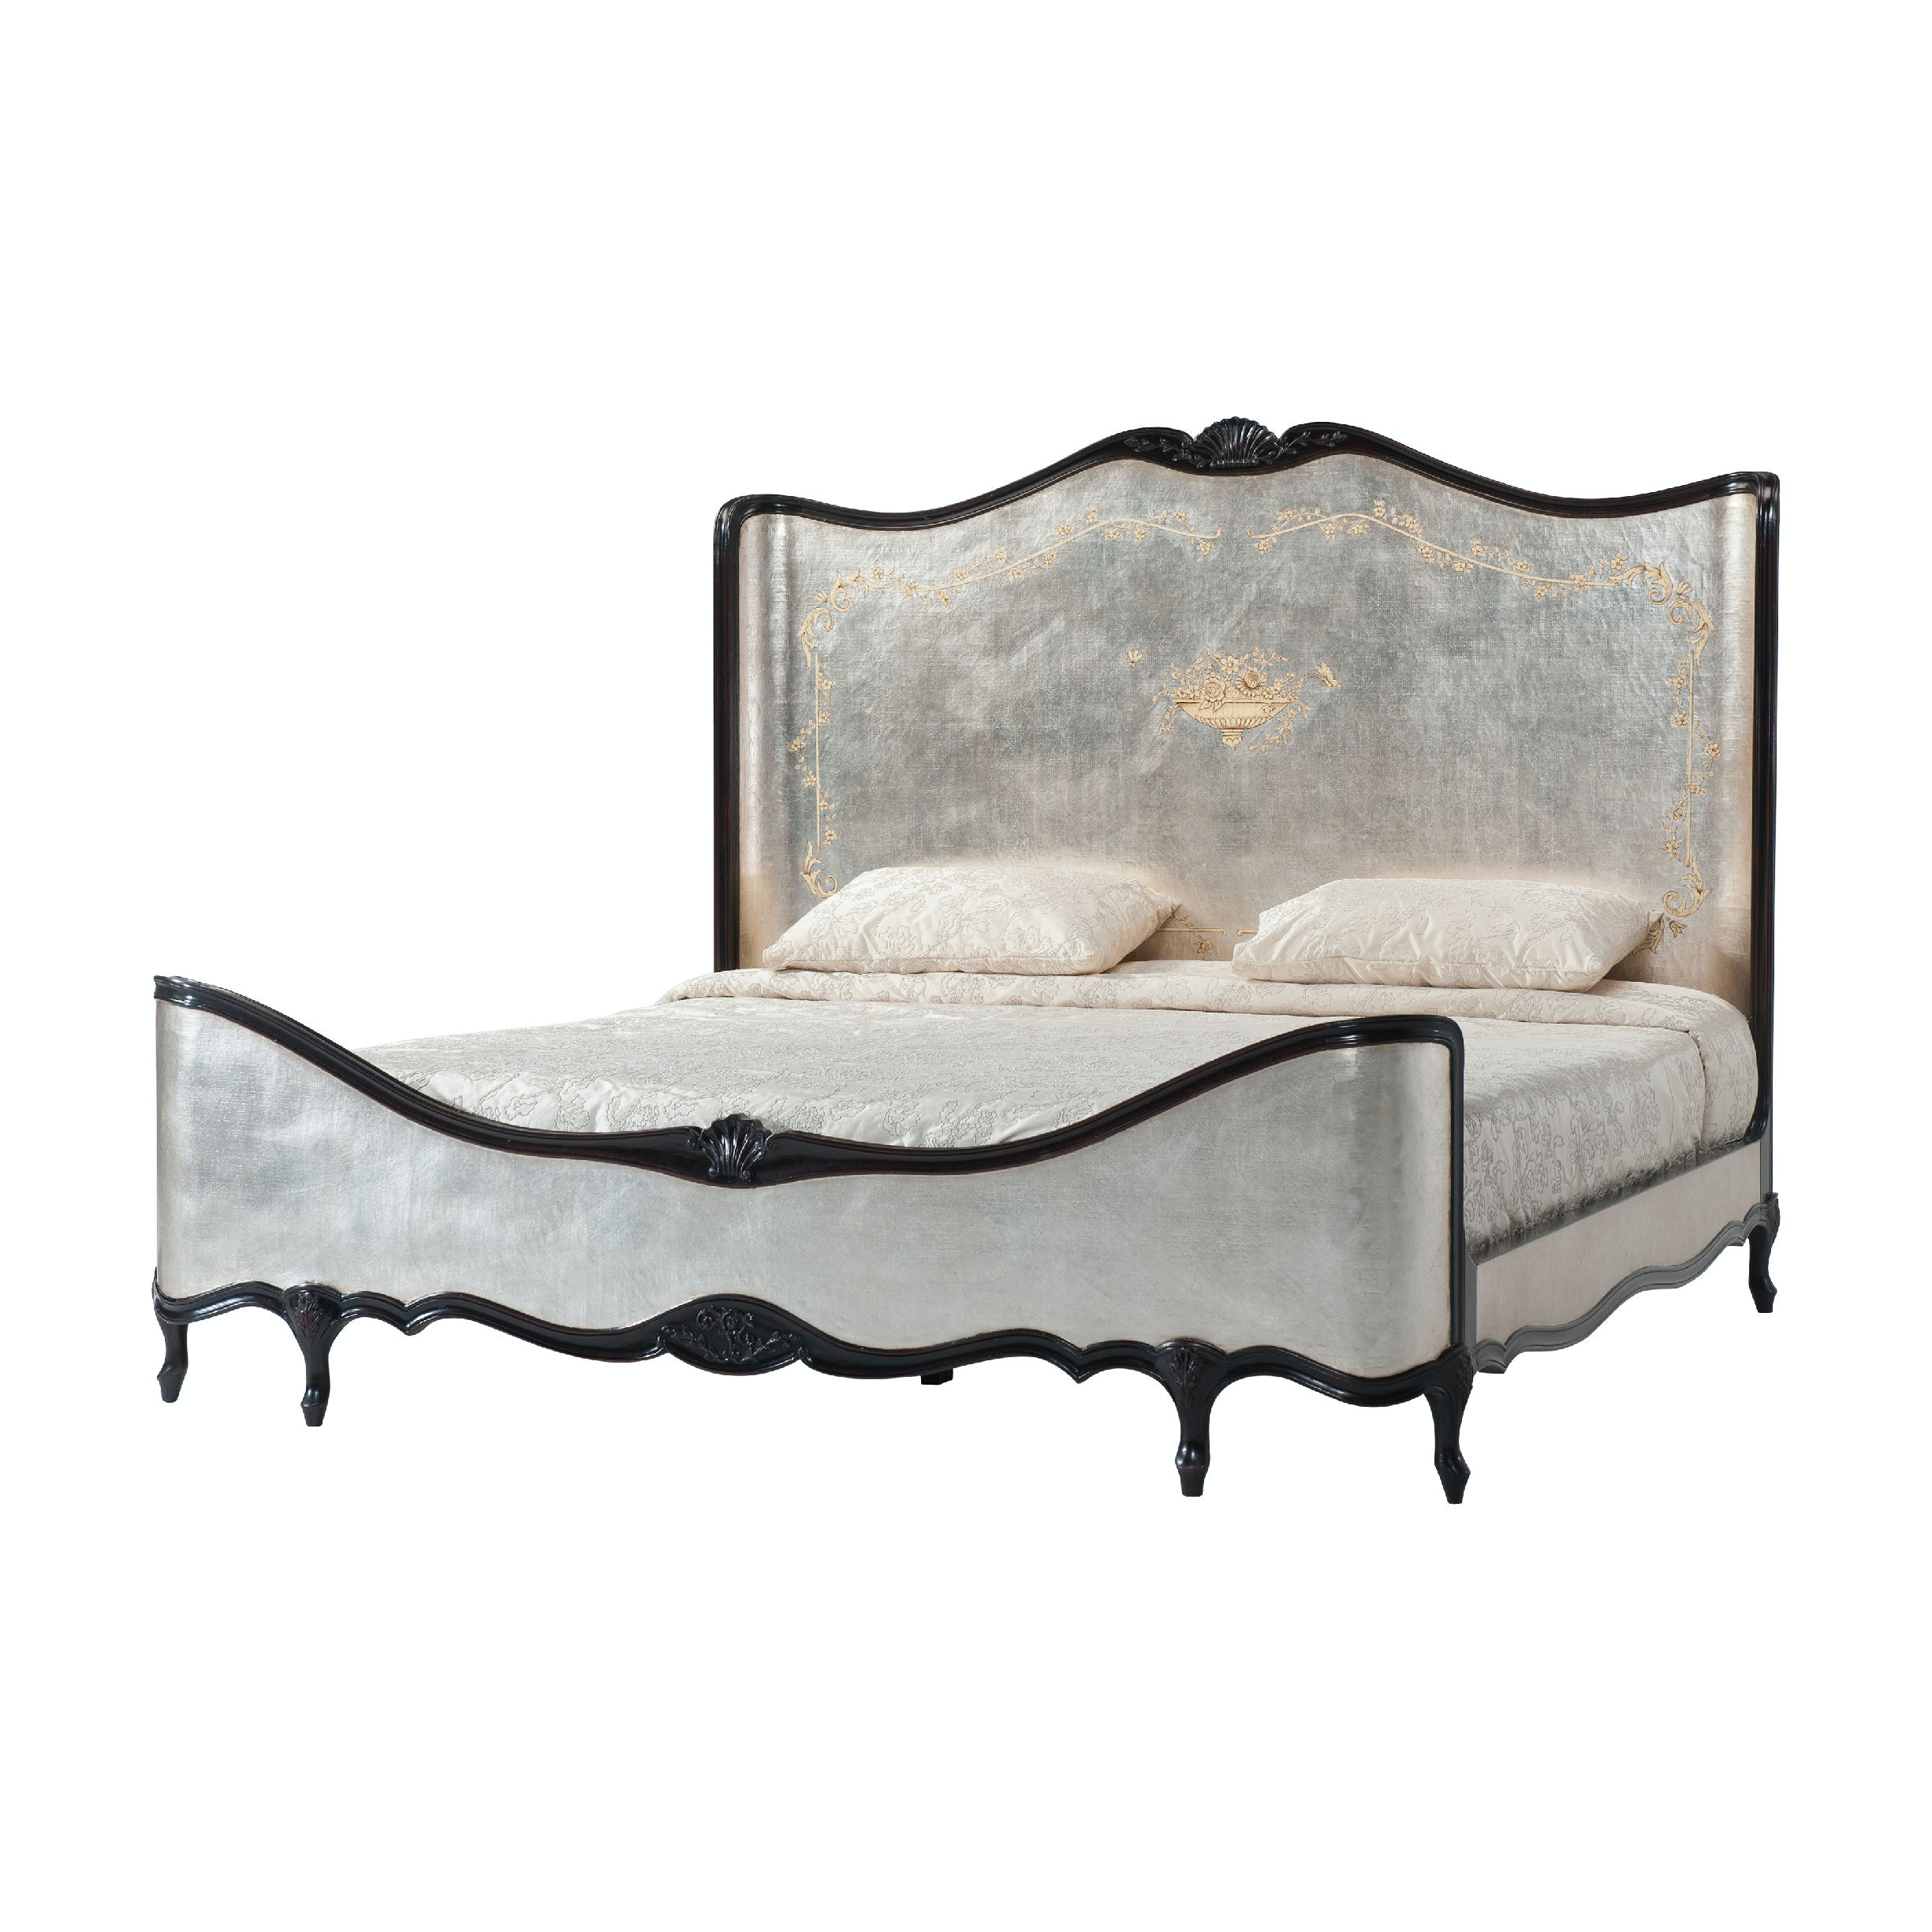 Theodore Alexander Bedroom Enchanted Evening 8302 004 At Cherry House  Furniture